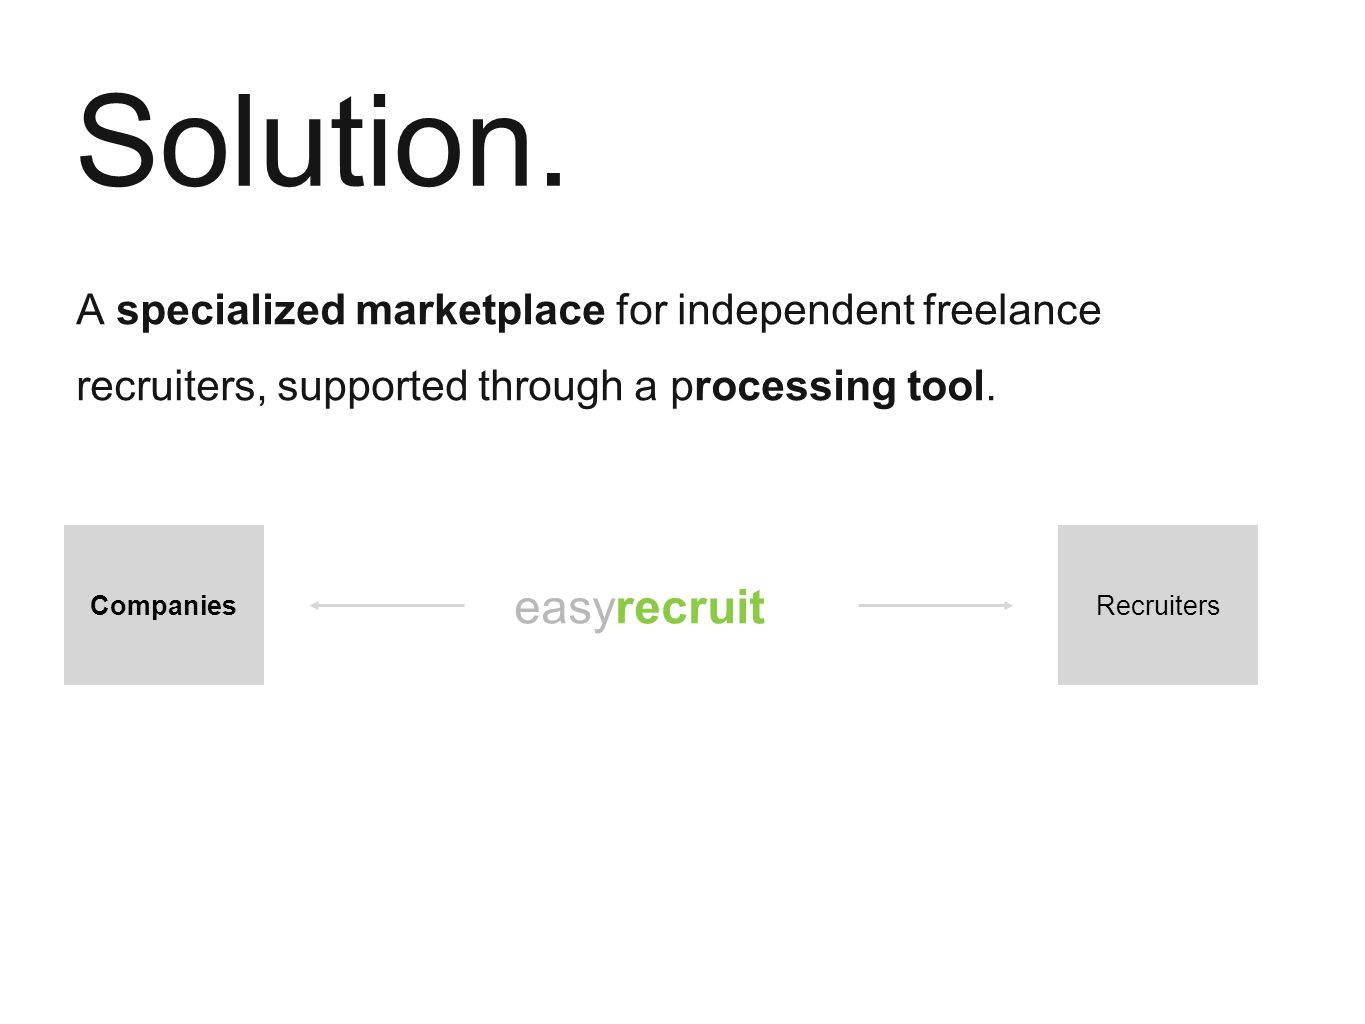 easyrecruit CompaniesRecruiters A specialized marketplace for independent freelance recruiters, supported through a processing tool.